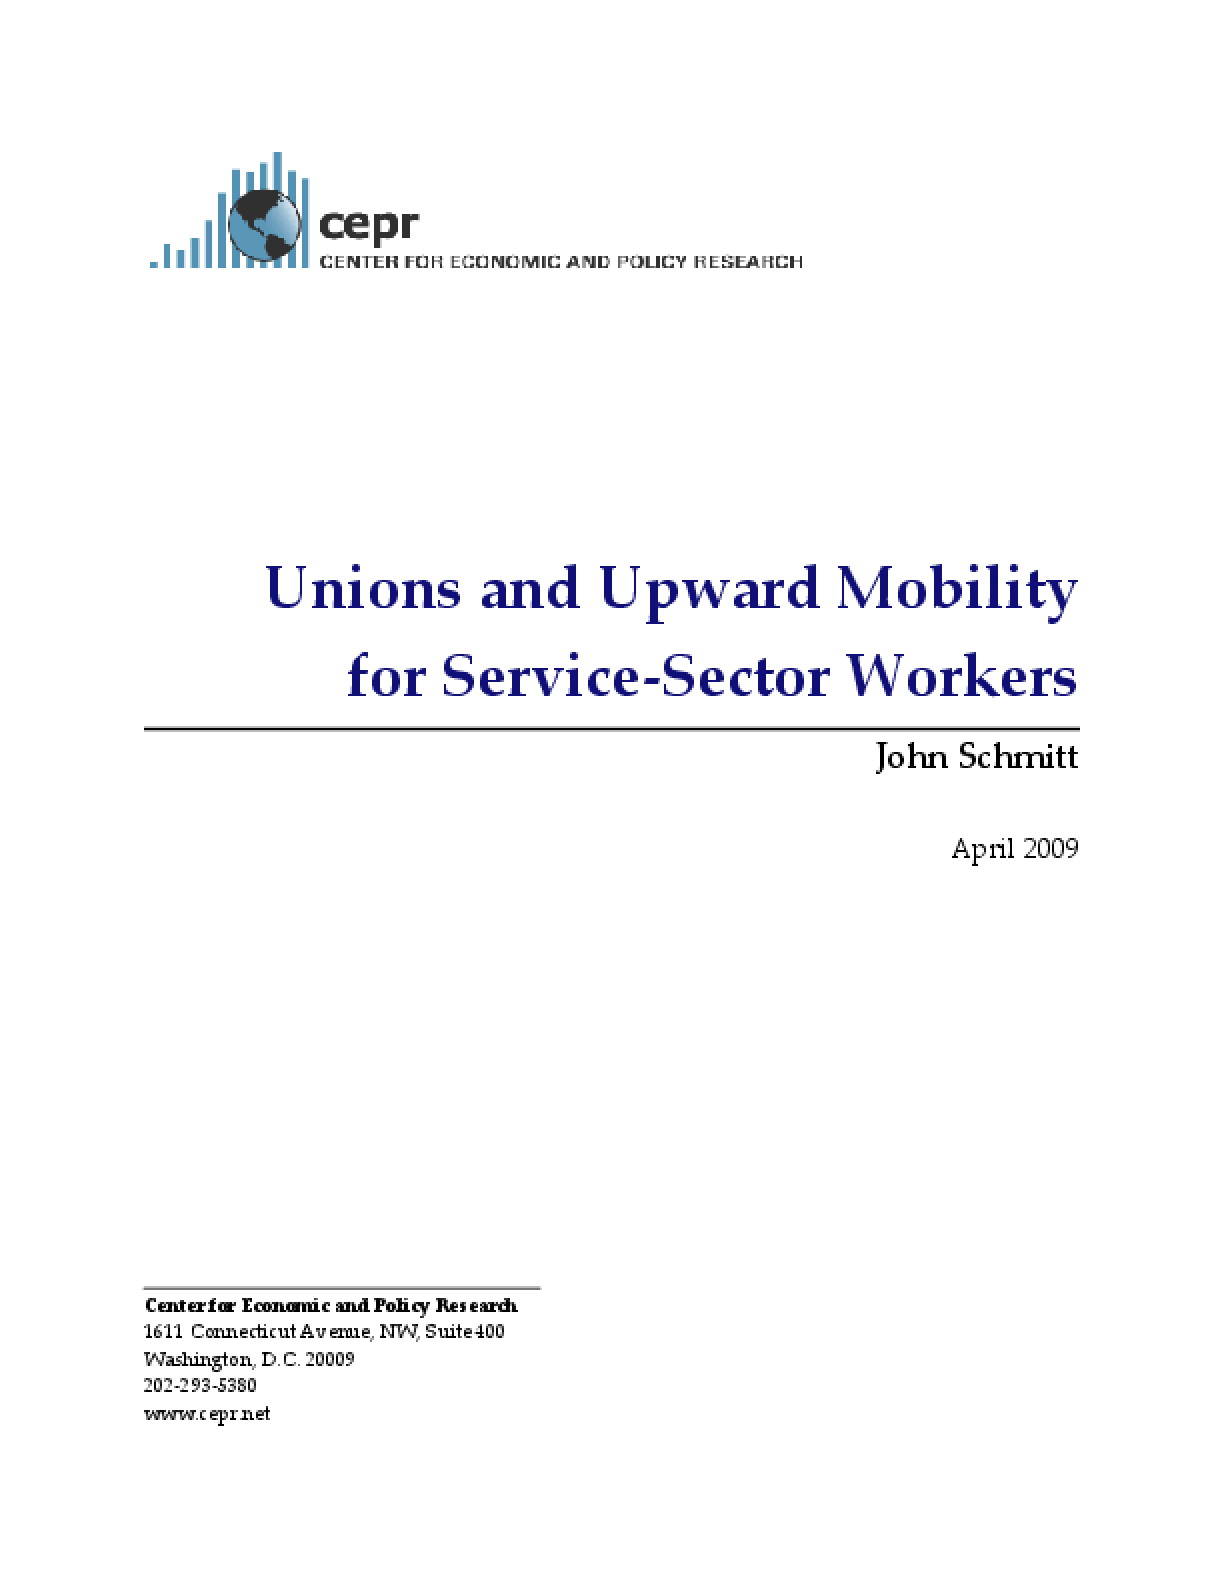 Unions and Upward Mobility for Service-Sector Workers